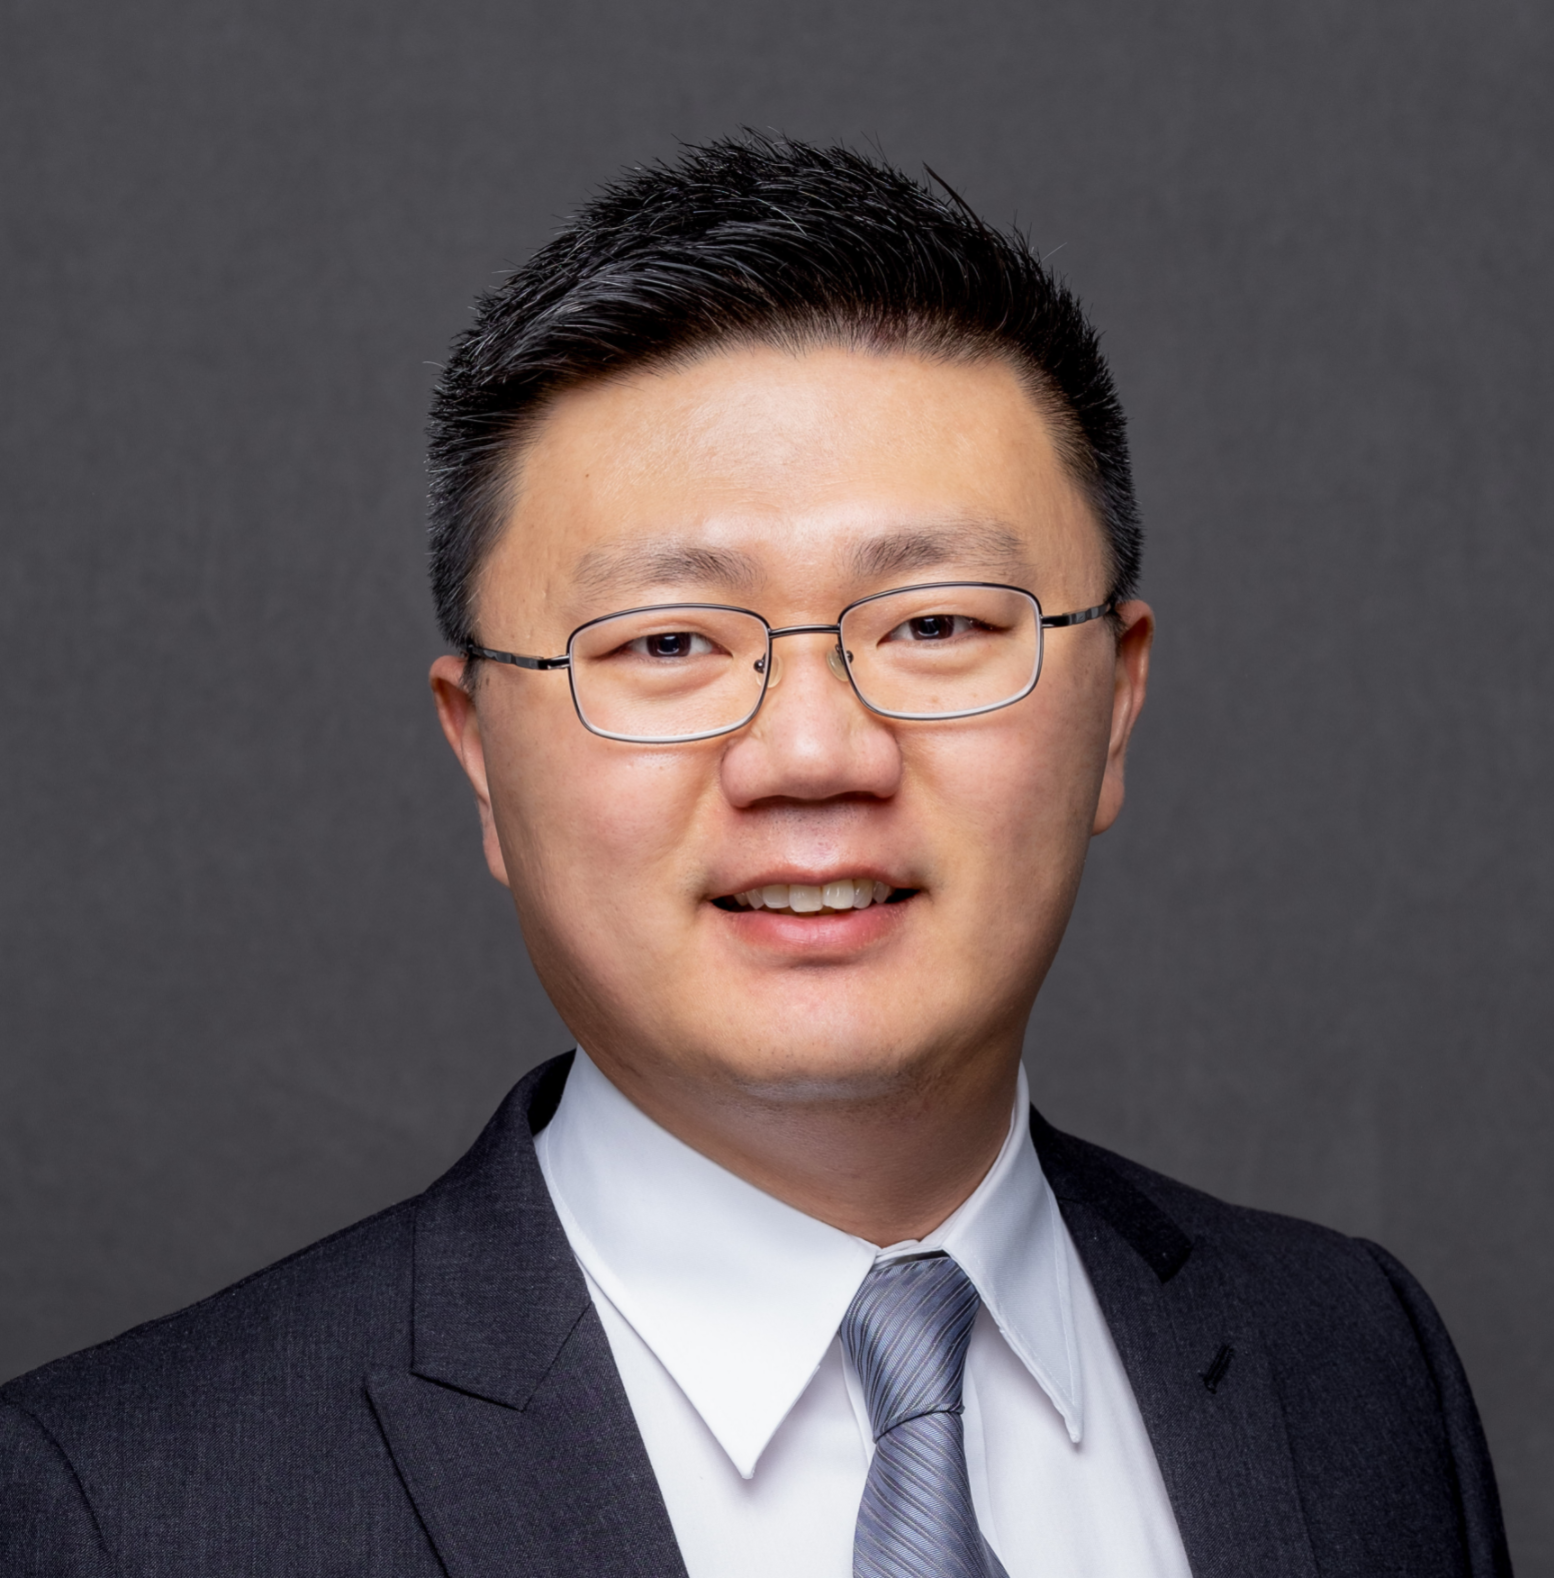 NC State College of Education Assistant Professor Sunghwan Byun, Ph.D.